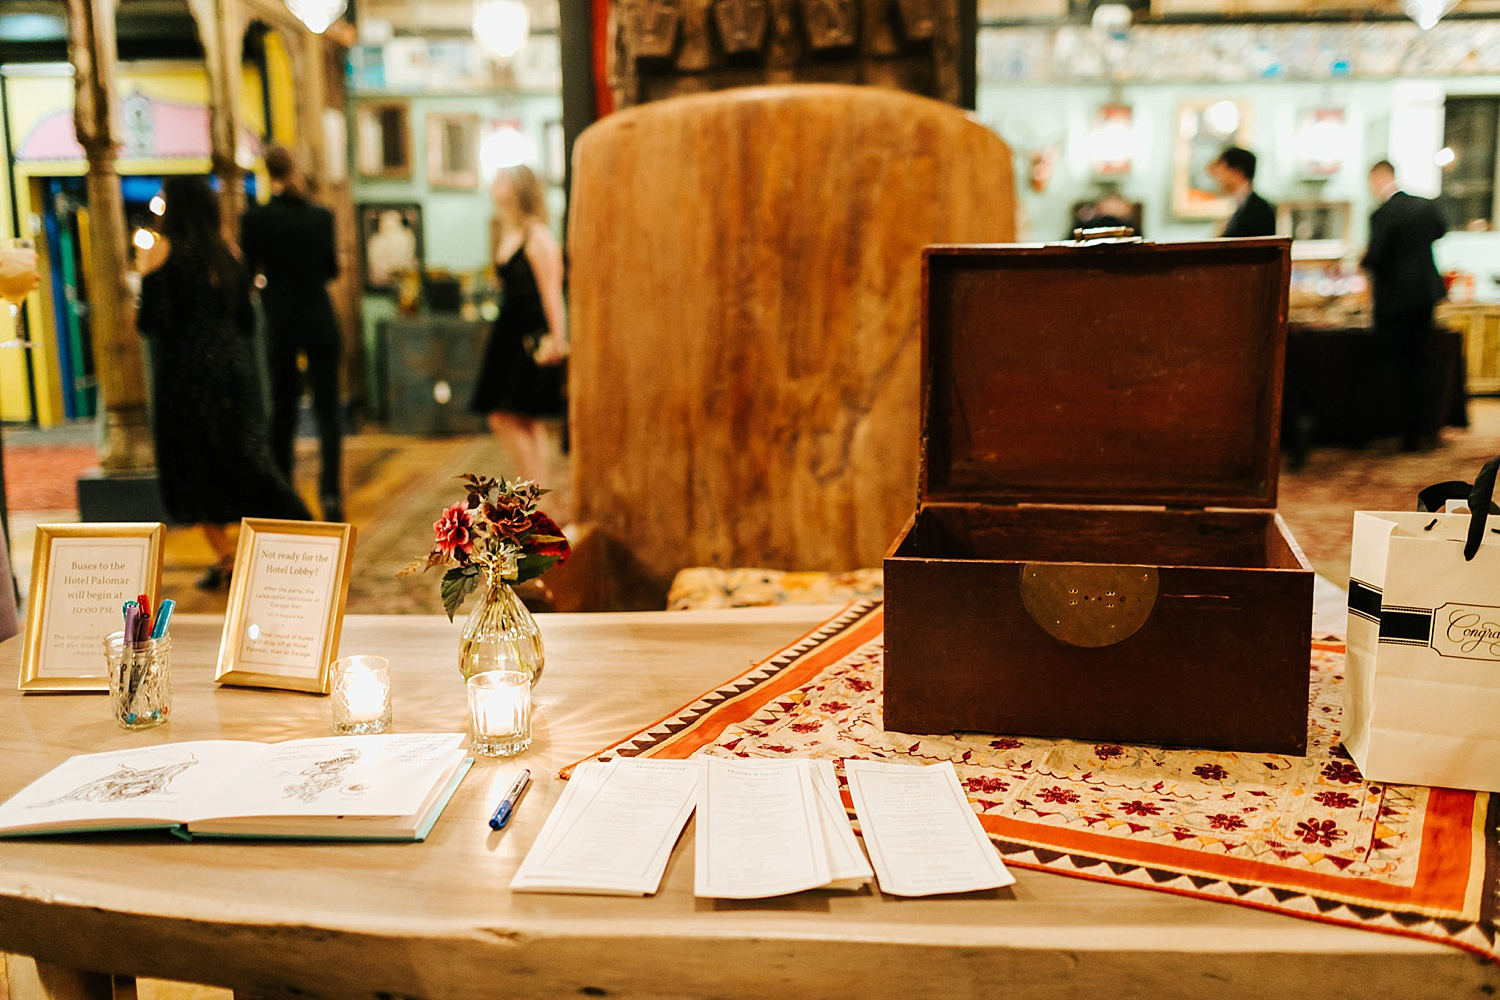 Wedding details at material culture